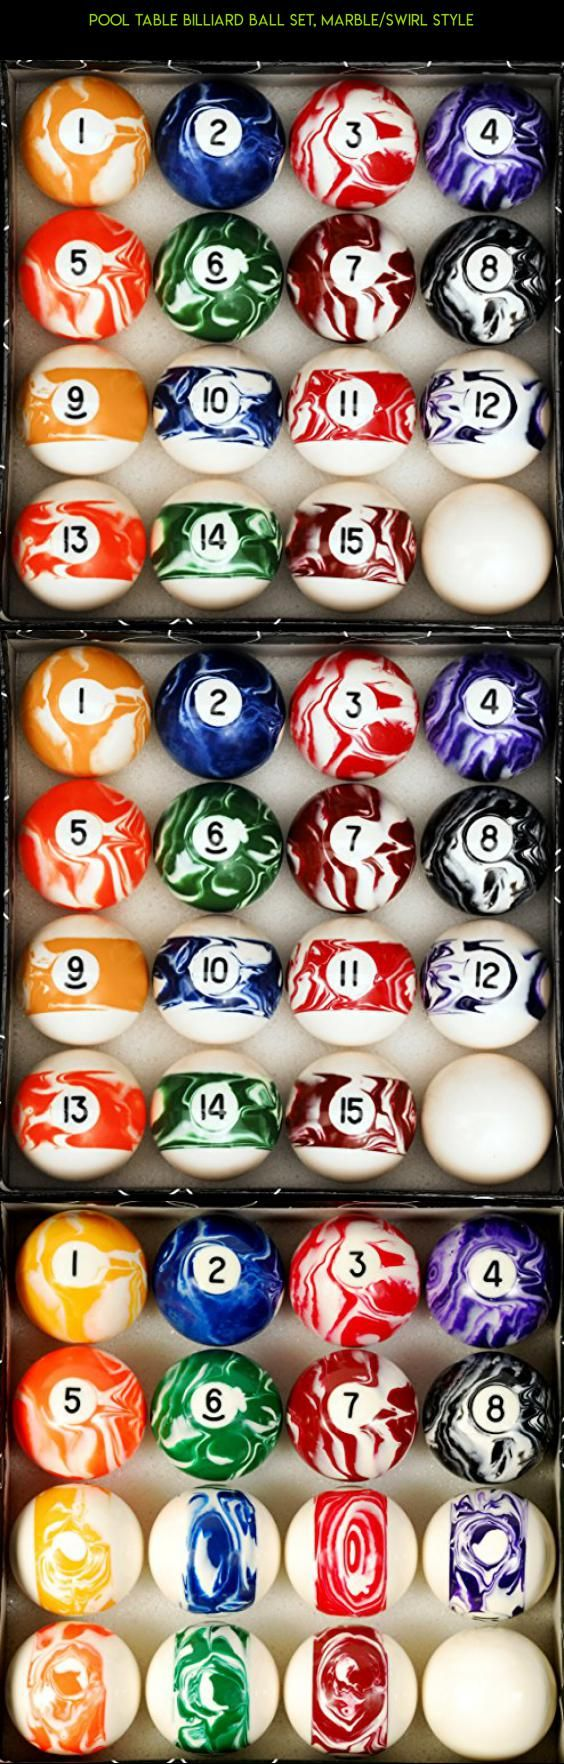 Pool table legs accessories for sale - Pool Table Billiard Ball Set Marble Swirl Style Technology Balls Racing